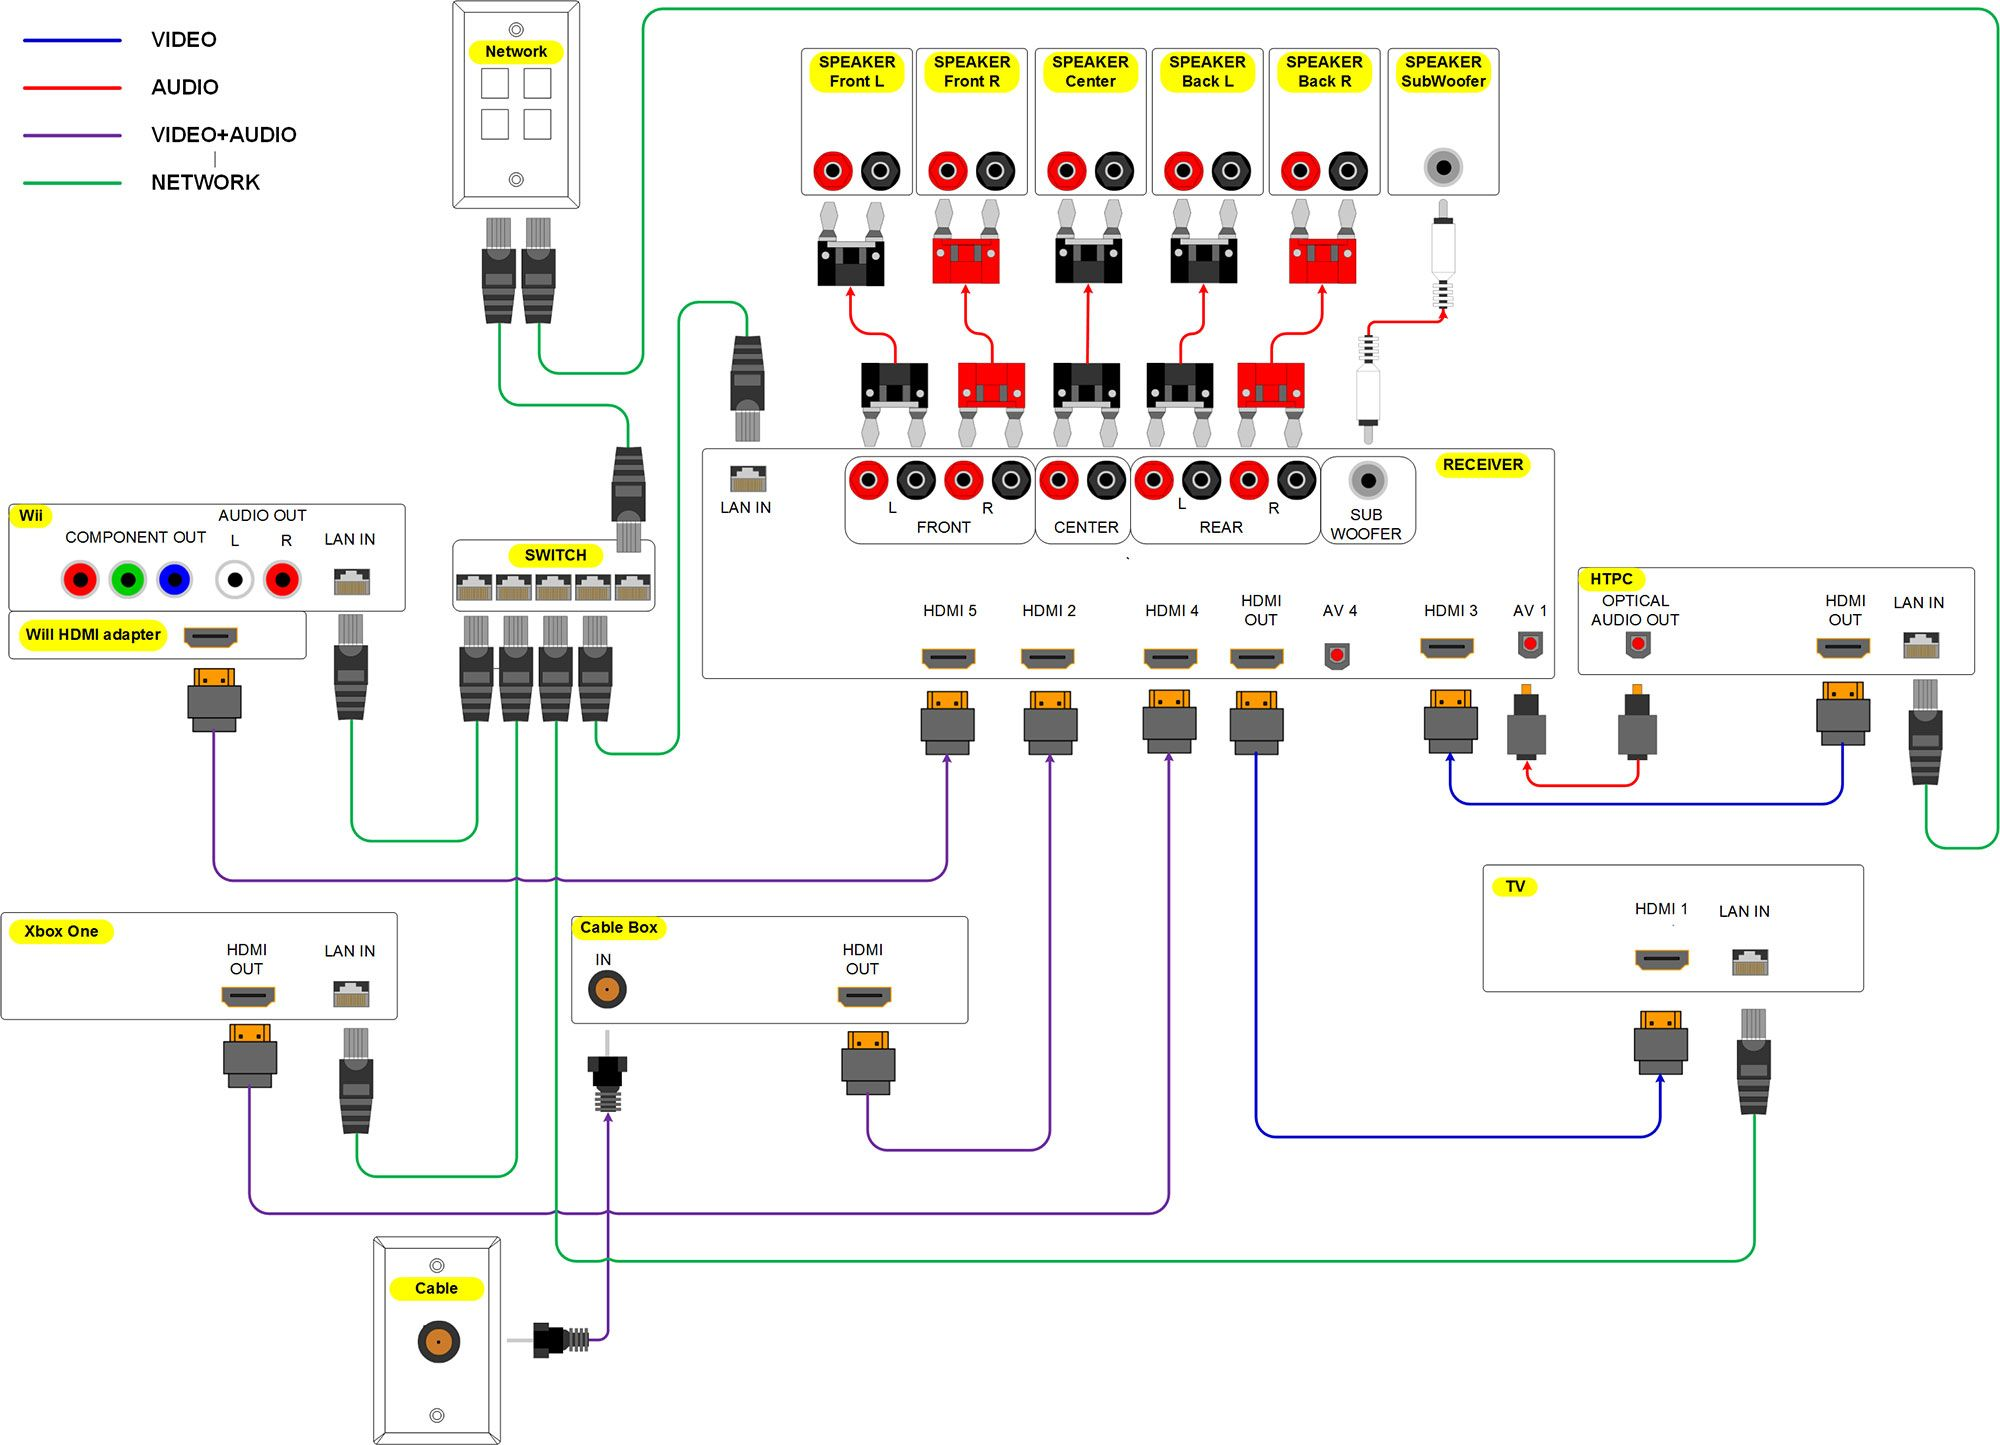 wiring house to ipad wiring circuit u2022 rh wiringonline today Residential Electrical Wiring Diagrams Basic Electrical Wiring Diagrams